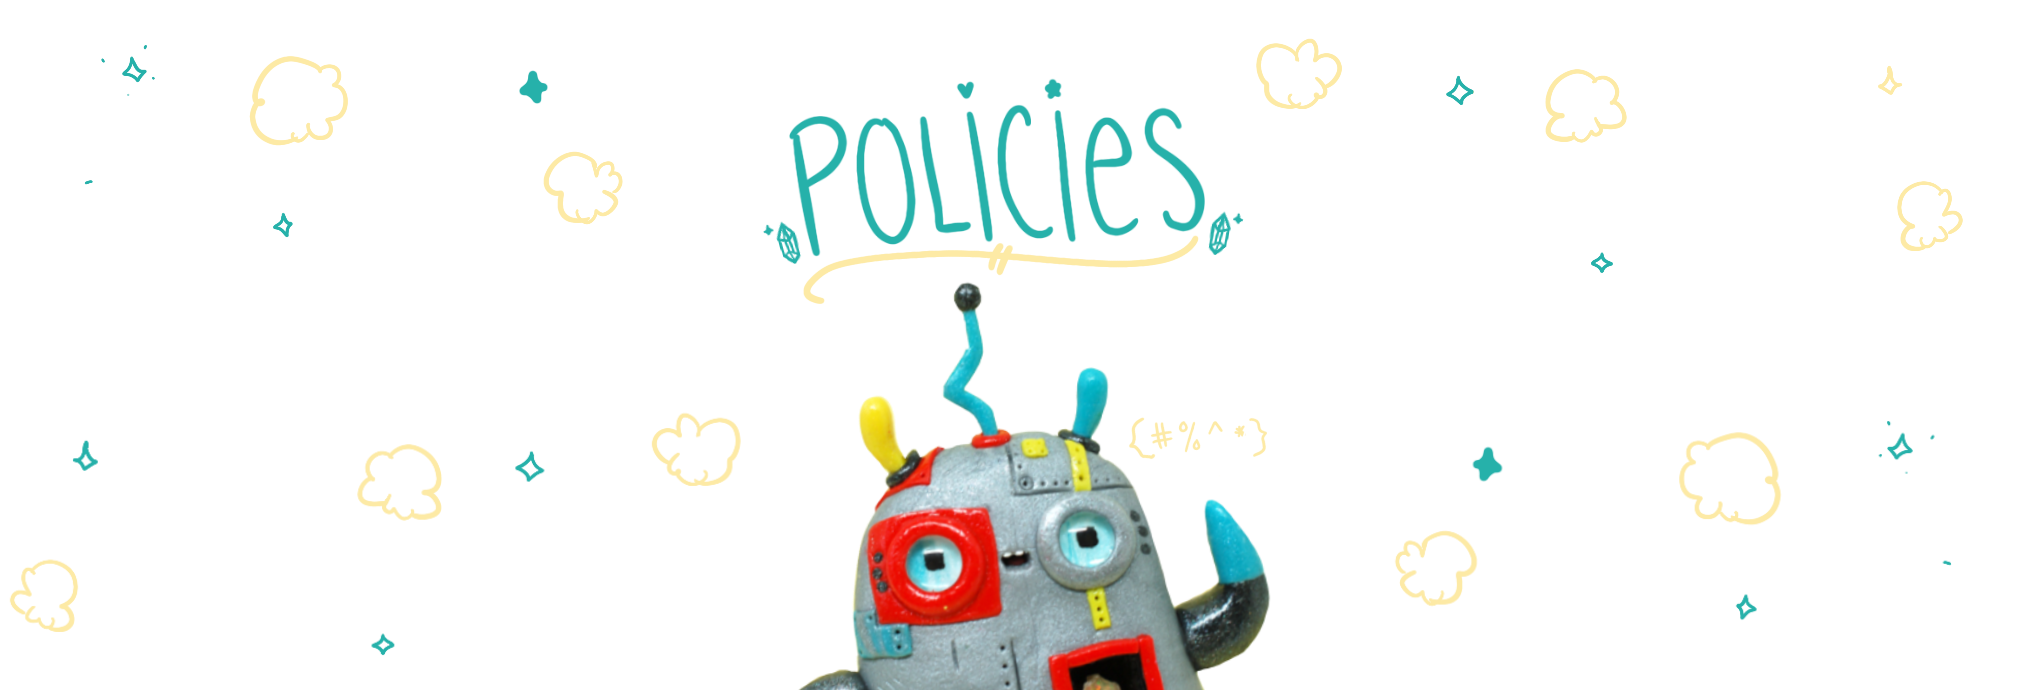 Policies image with Reboot the robot weebeast